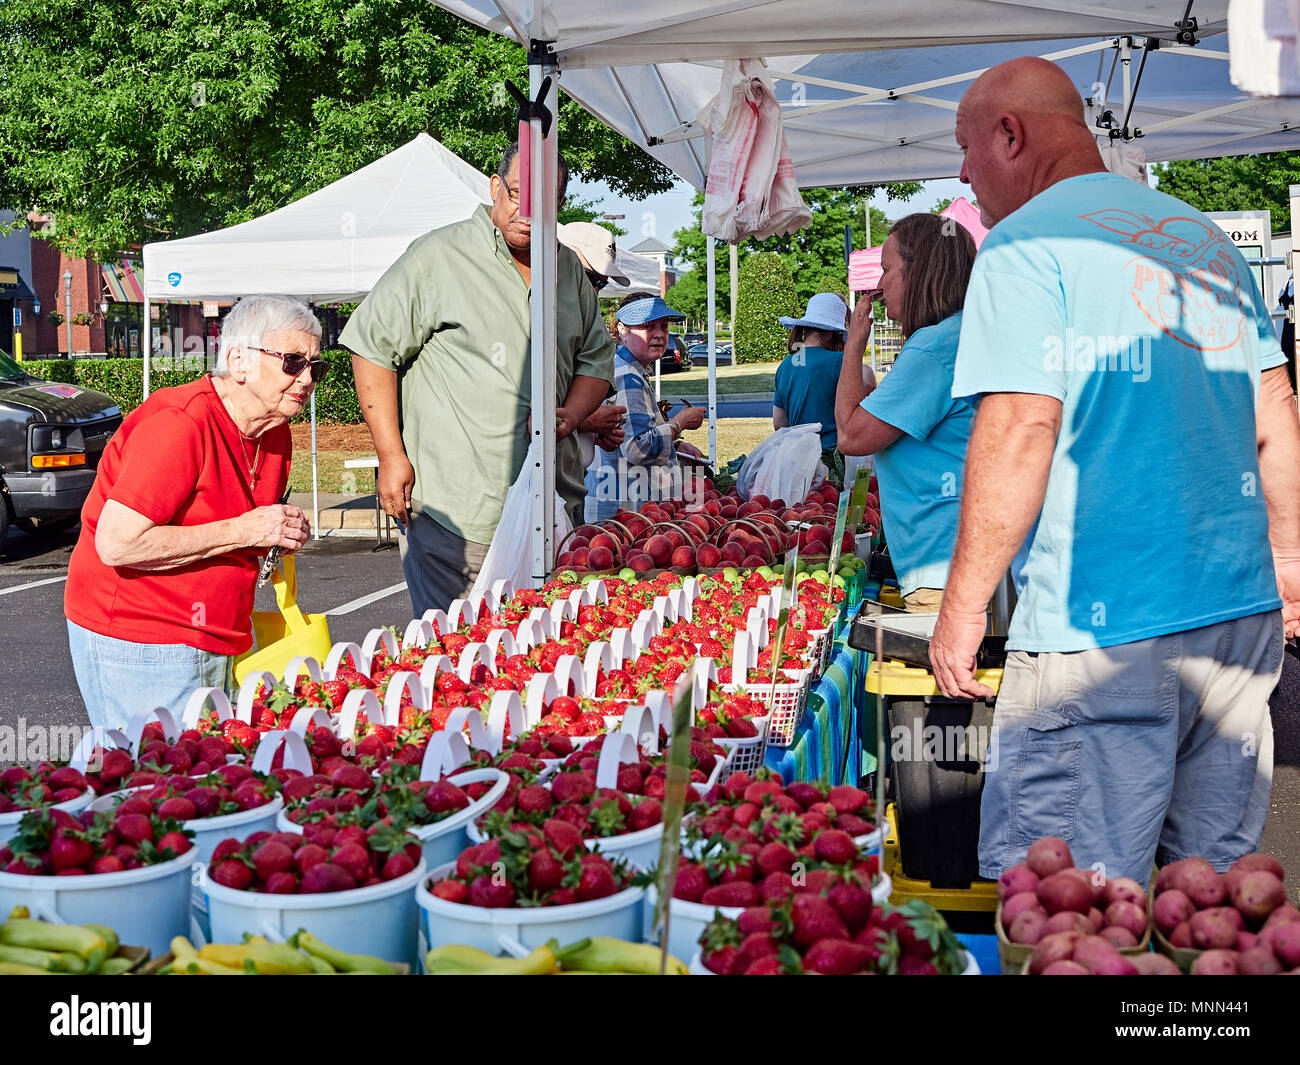 Senior or elderly woman shopping for fresh produce at a local farmer's market in Montgomery Alabama, USA. - Stock Image